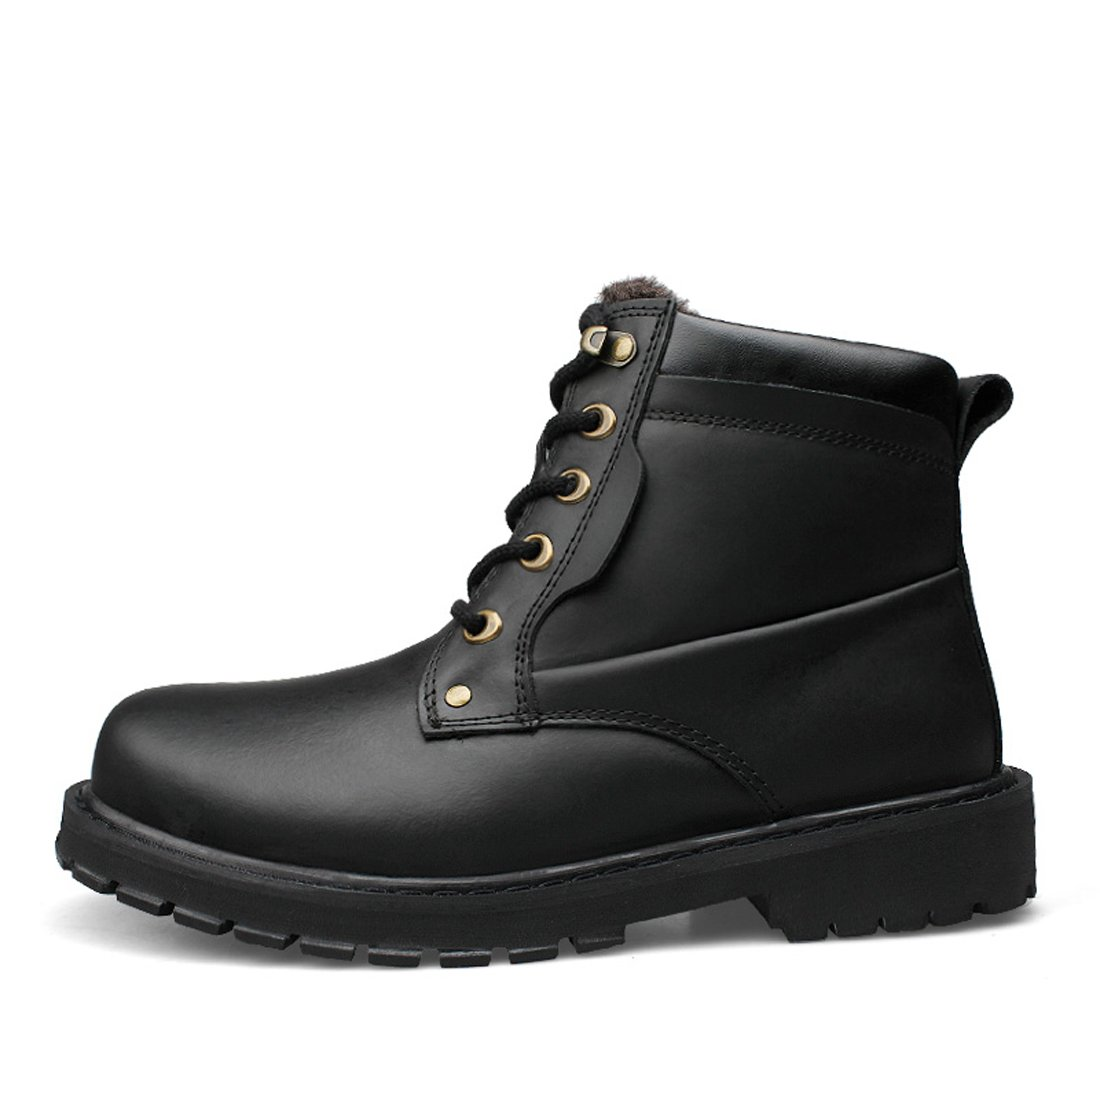 061131aac0f Amazon.com | BARKOR Boots Men's High Cut Leather Shoes Martin Boots ...